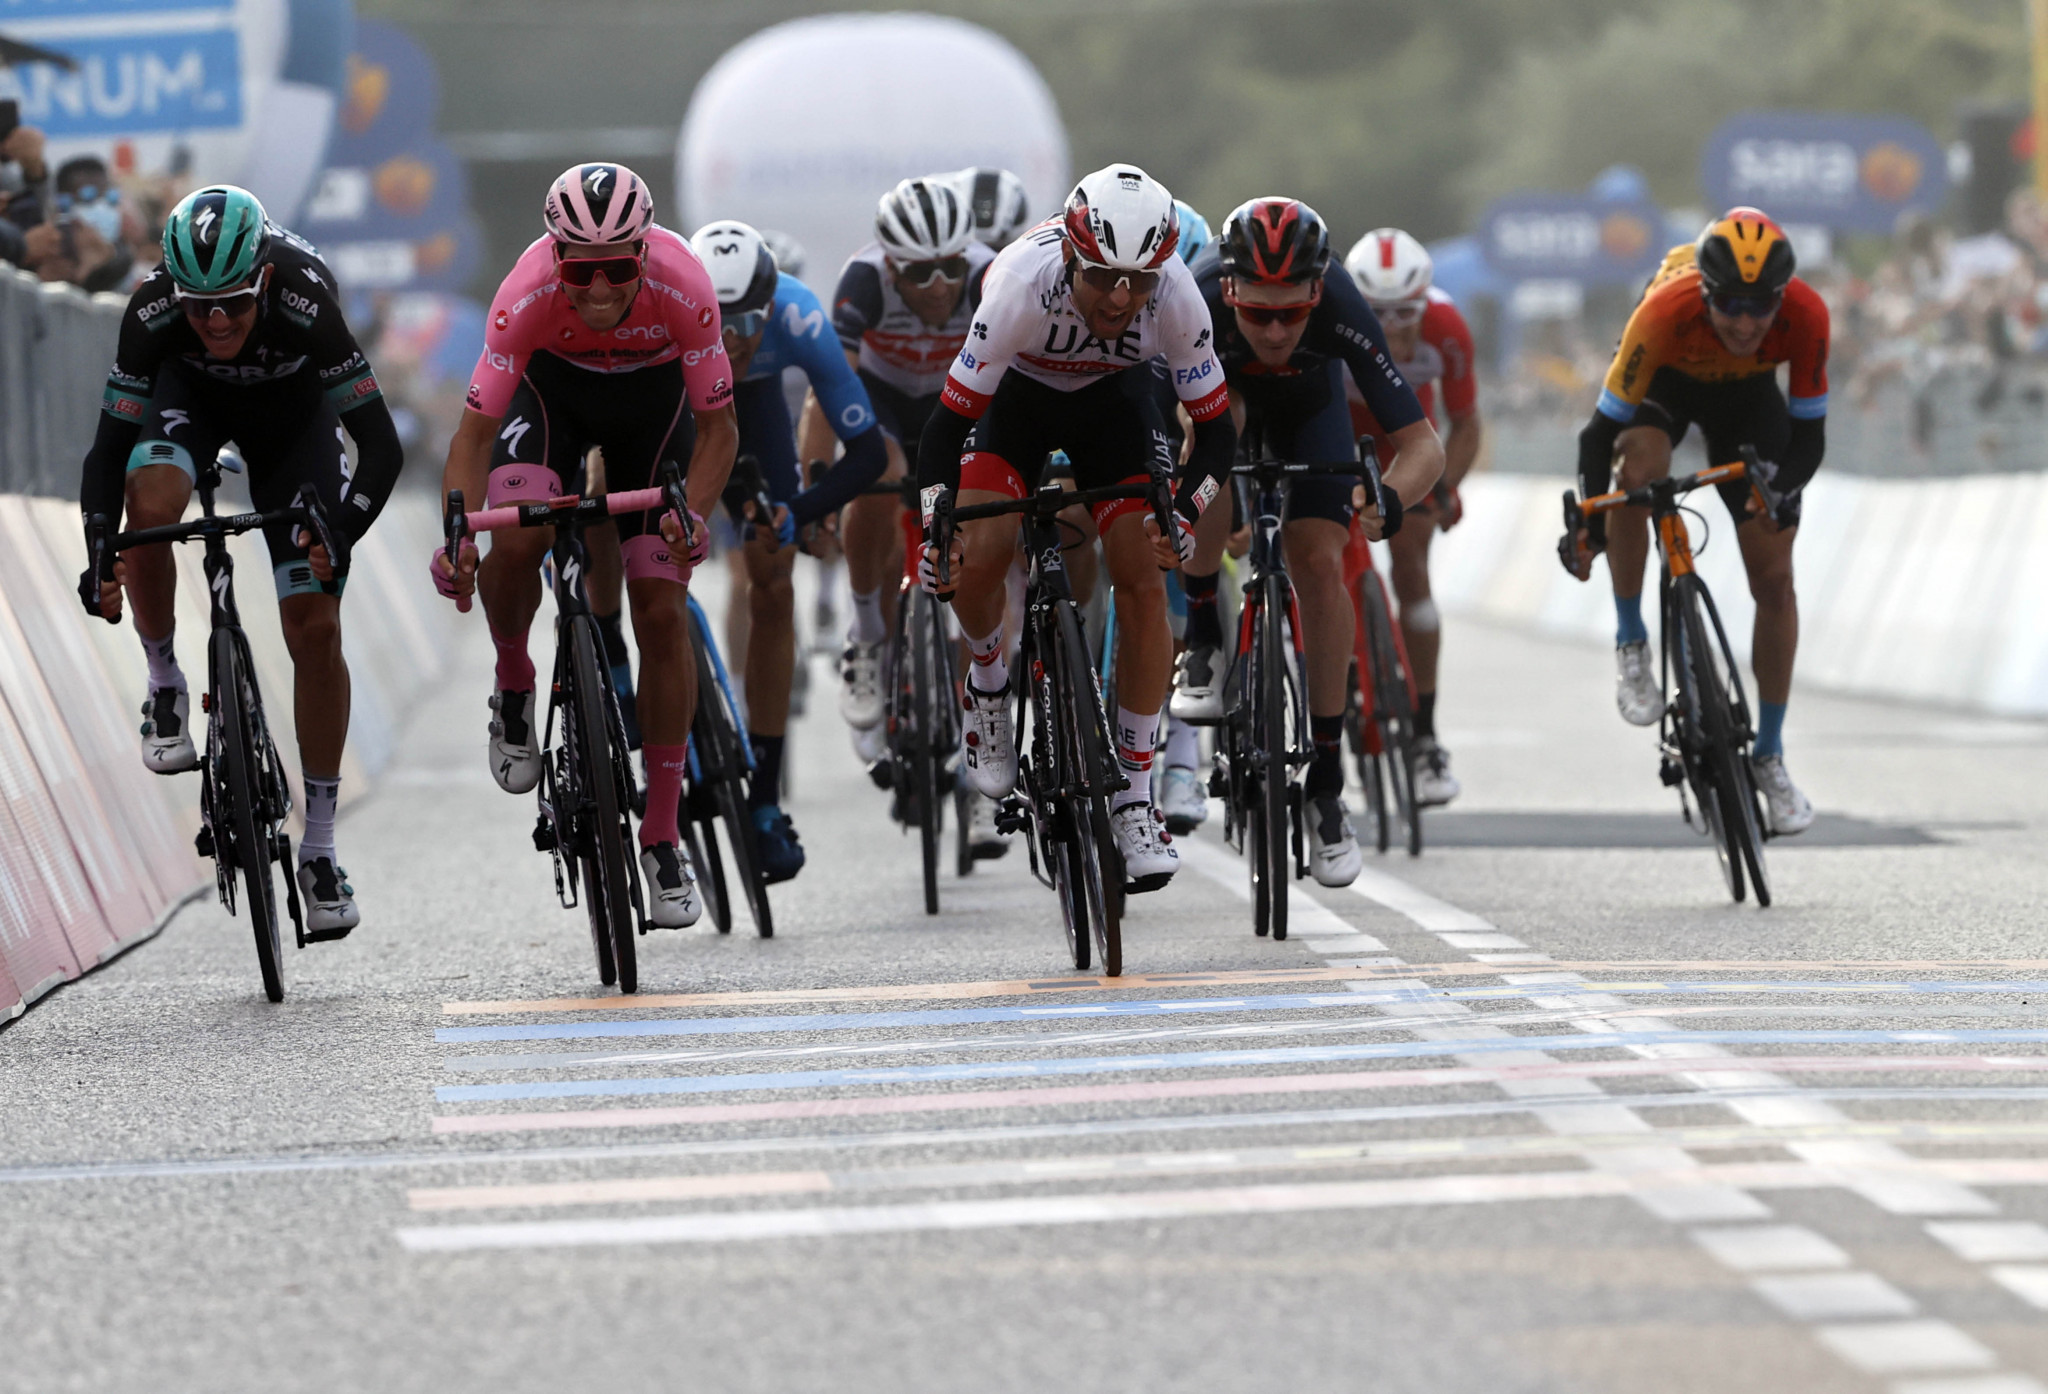 Ulissi sprints to second stage win at Giro d'Italia in Monselice